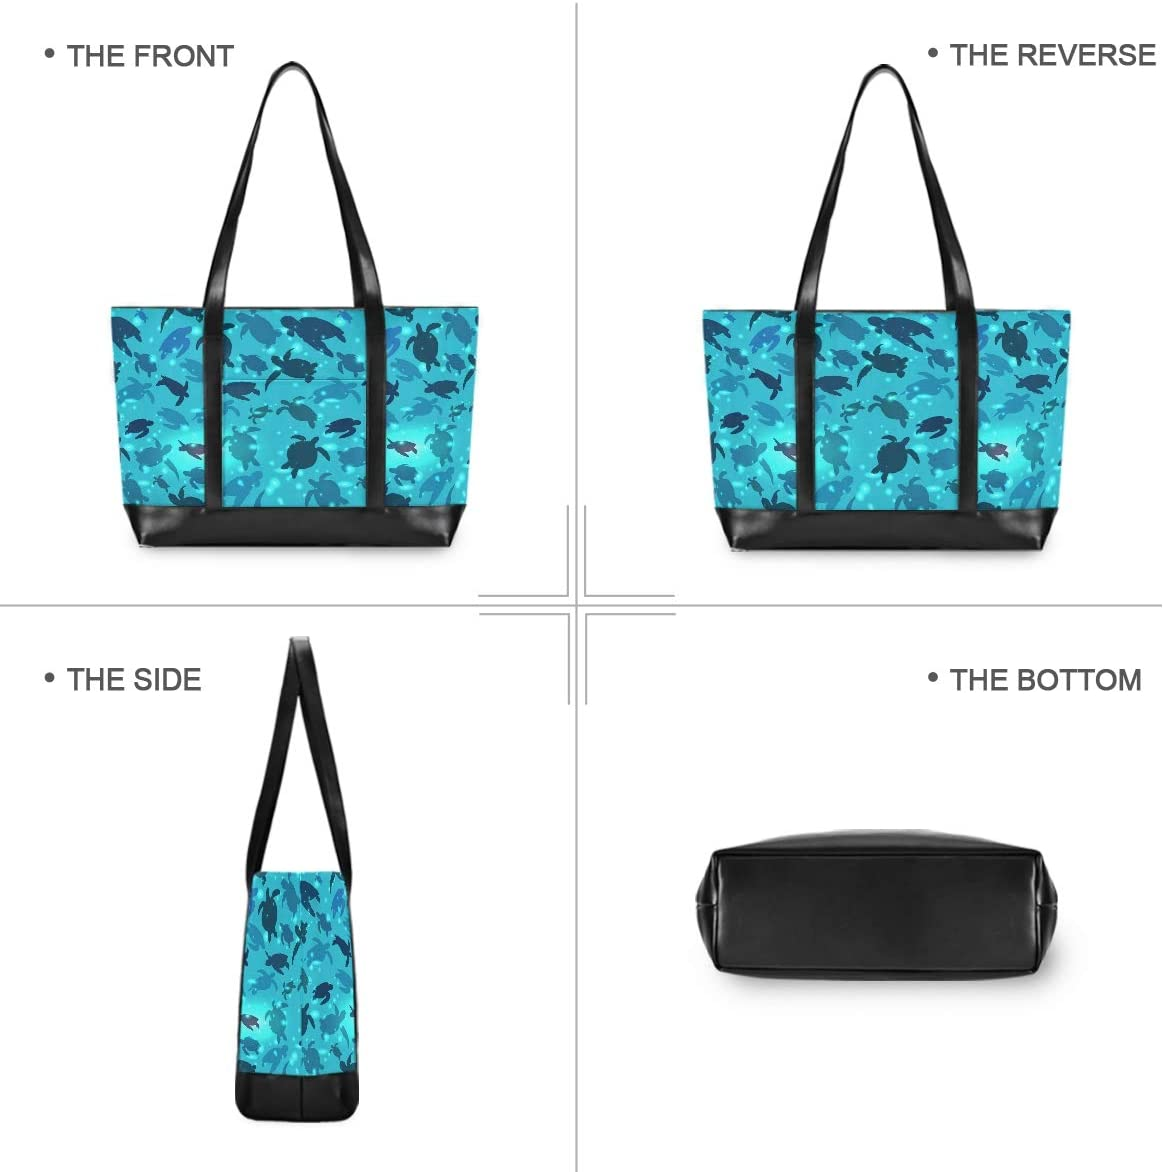 Turtle Canvas Shoulder Tote Bag Fit 15.6 Inch Computer Canvas Bag for Work School Travel Outdoor Activities Large Woman Laptop Tote Bag